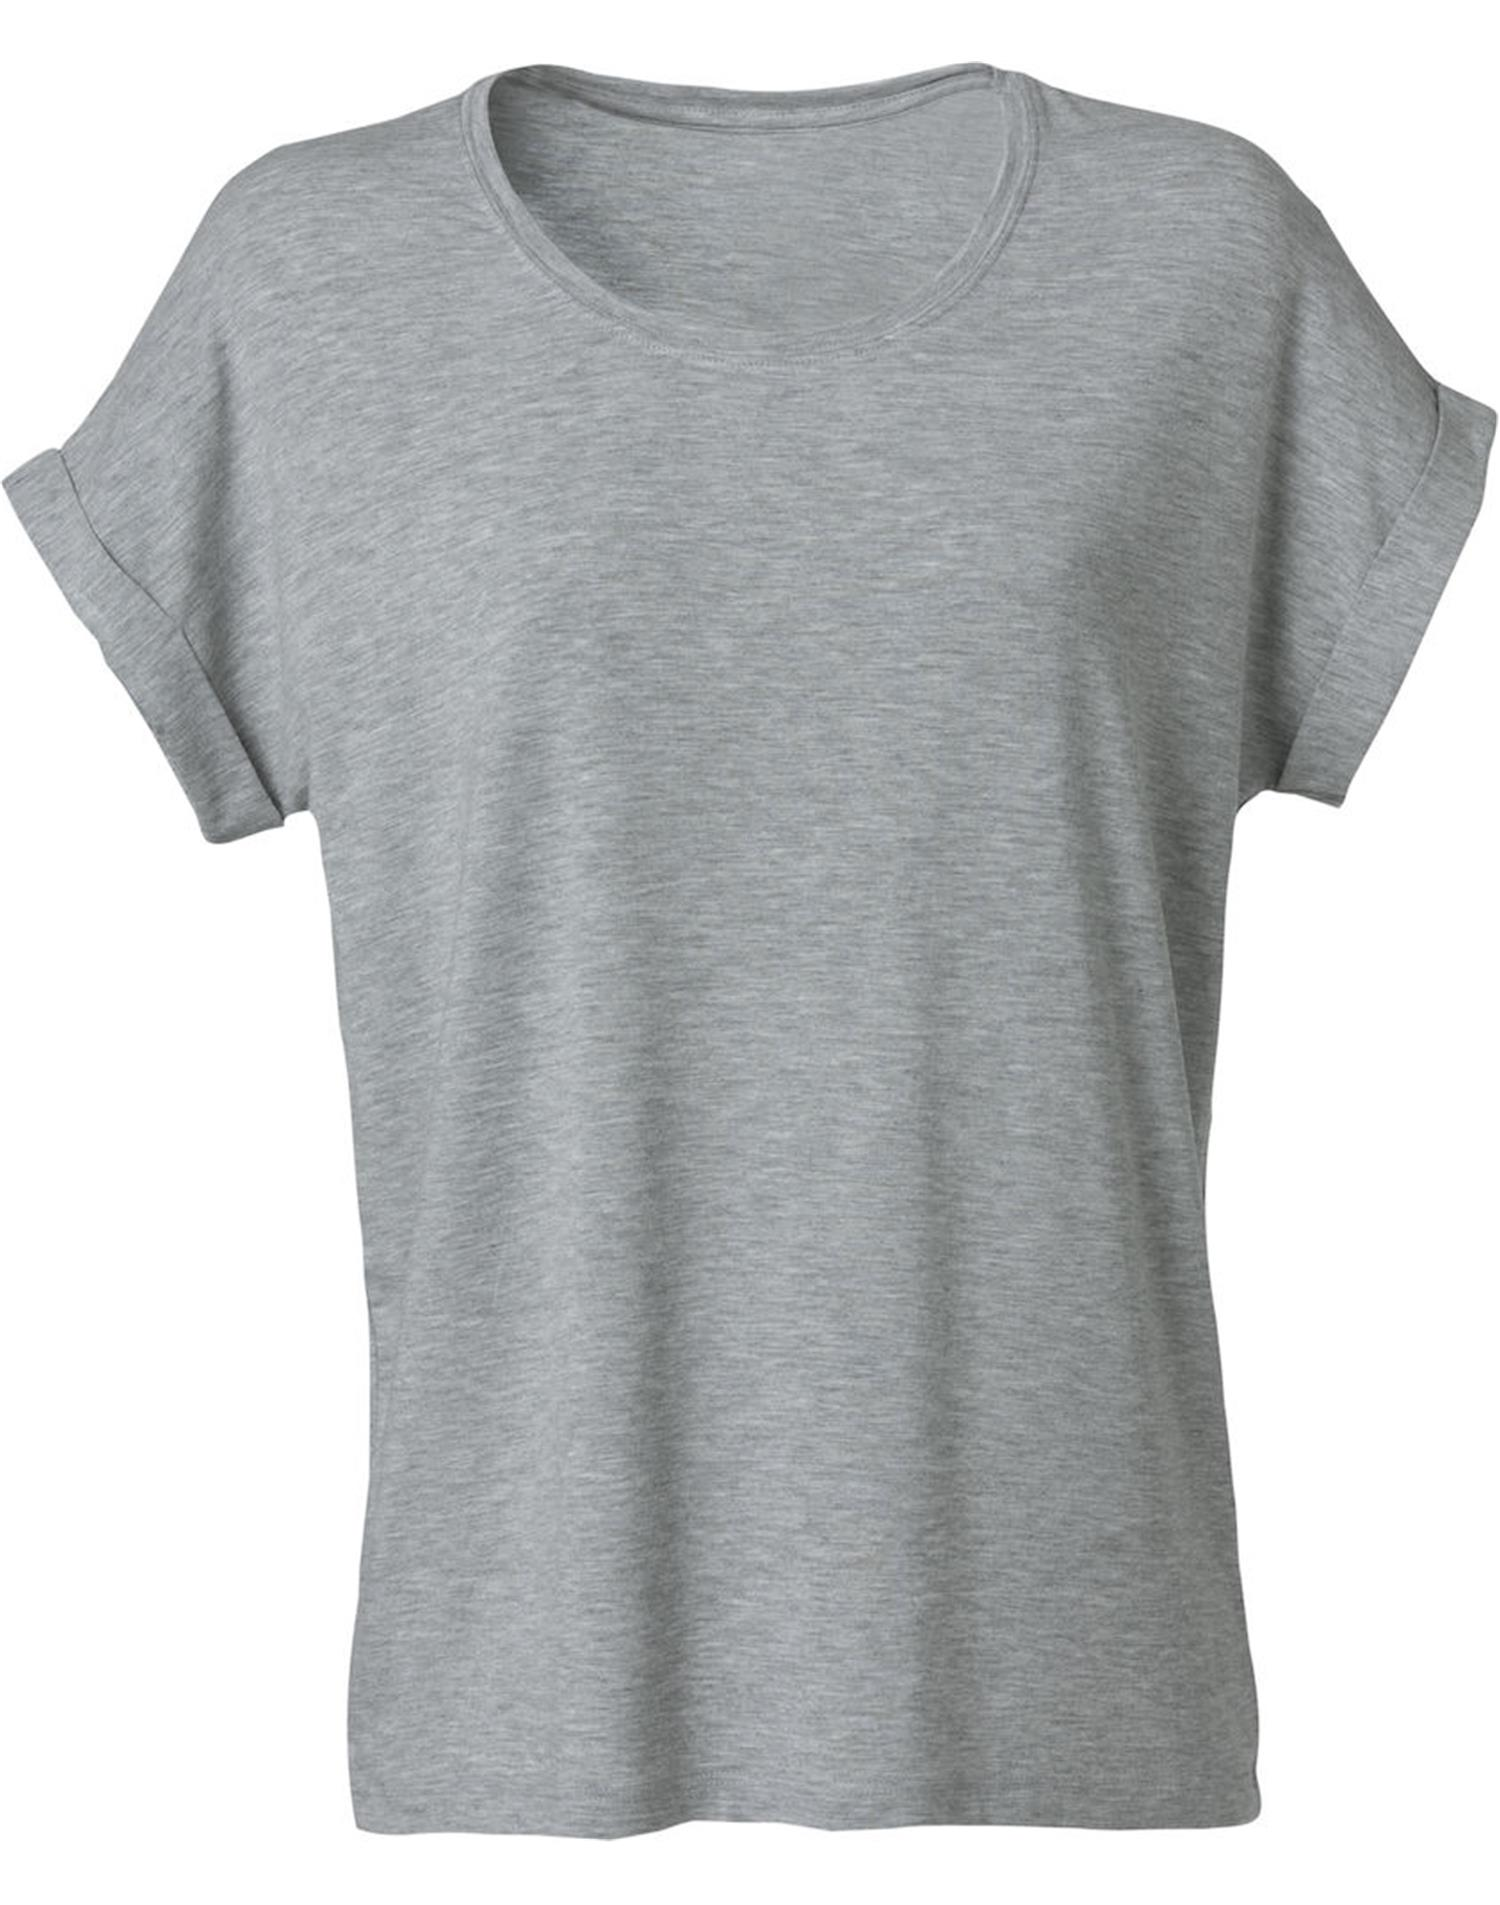 NewWave T-Shirt Donna Loose-Fit (2XL - GRIGIO MELANGE)